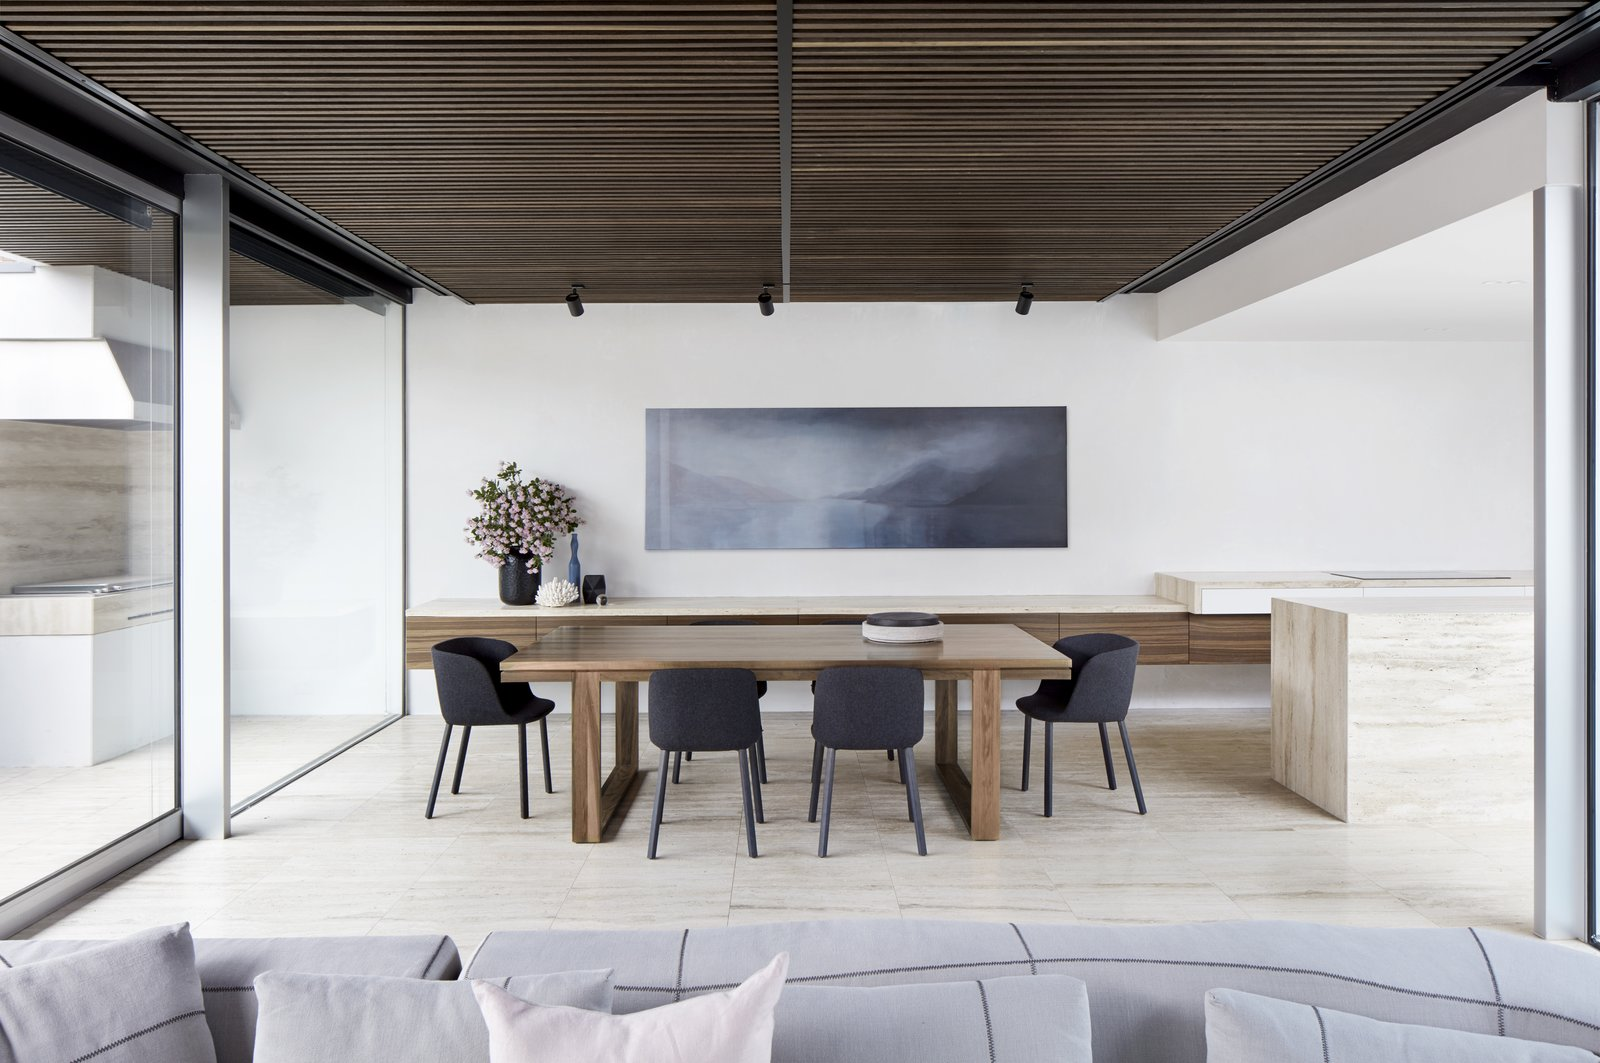 Dining Room, Travertine Floor, Track Lighting, Ceiling Lighting, Table, and Chair A built-in barbecue is just accessible on the other side of the dining room. The chairs are the Pianca 'Esse' from Meizai.    Photo 7 of 11 in Courtyards Maximize Sunlight in This Renovated Australian Abode